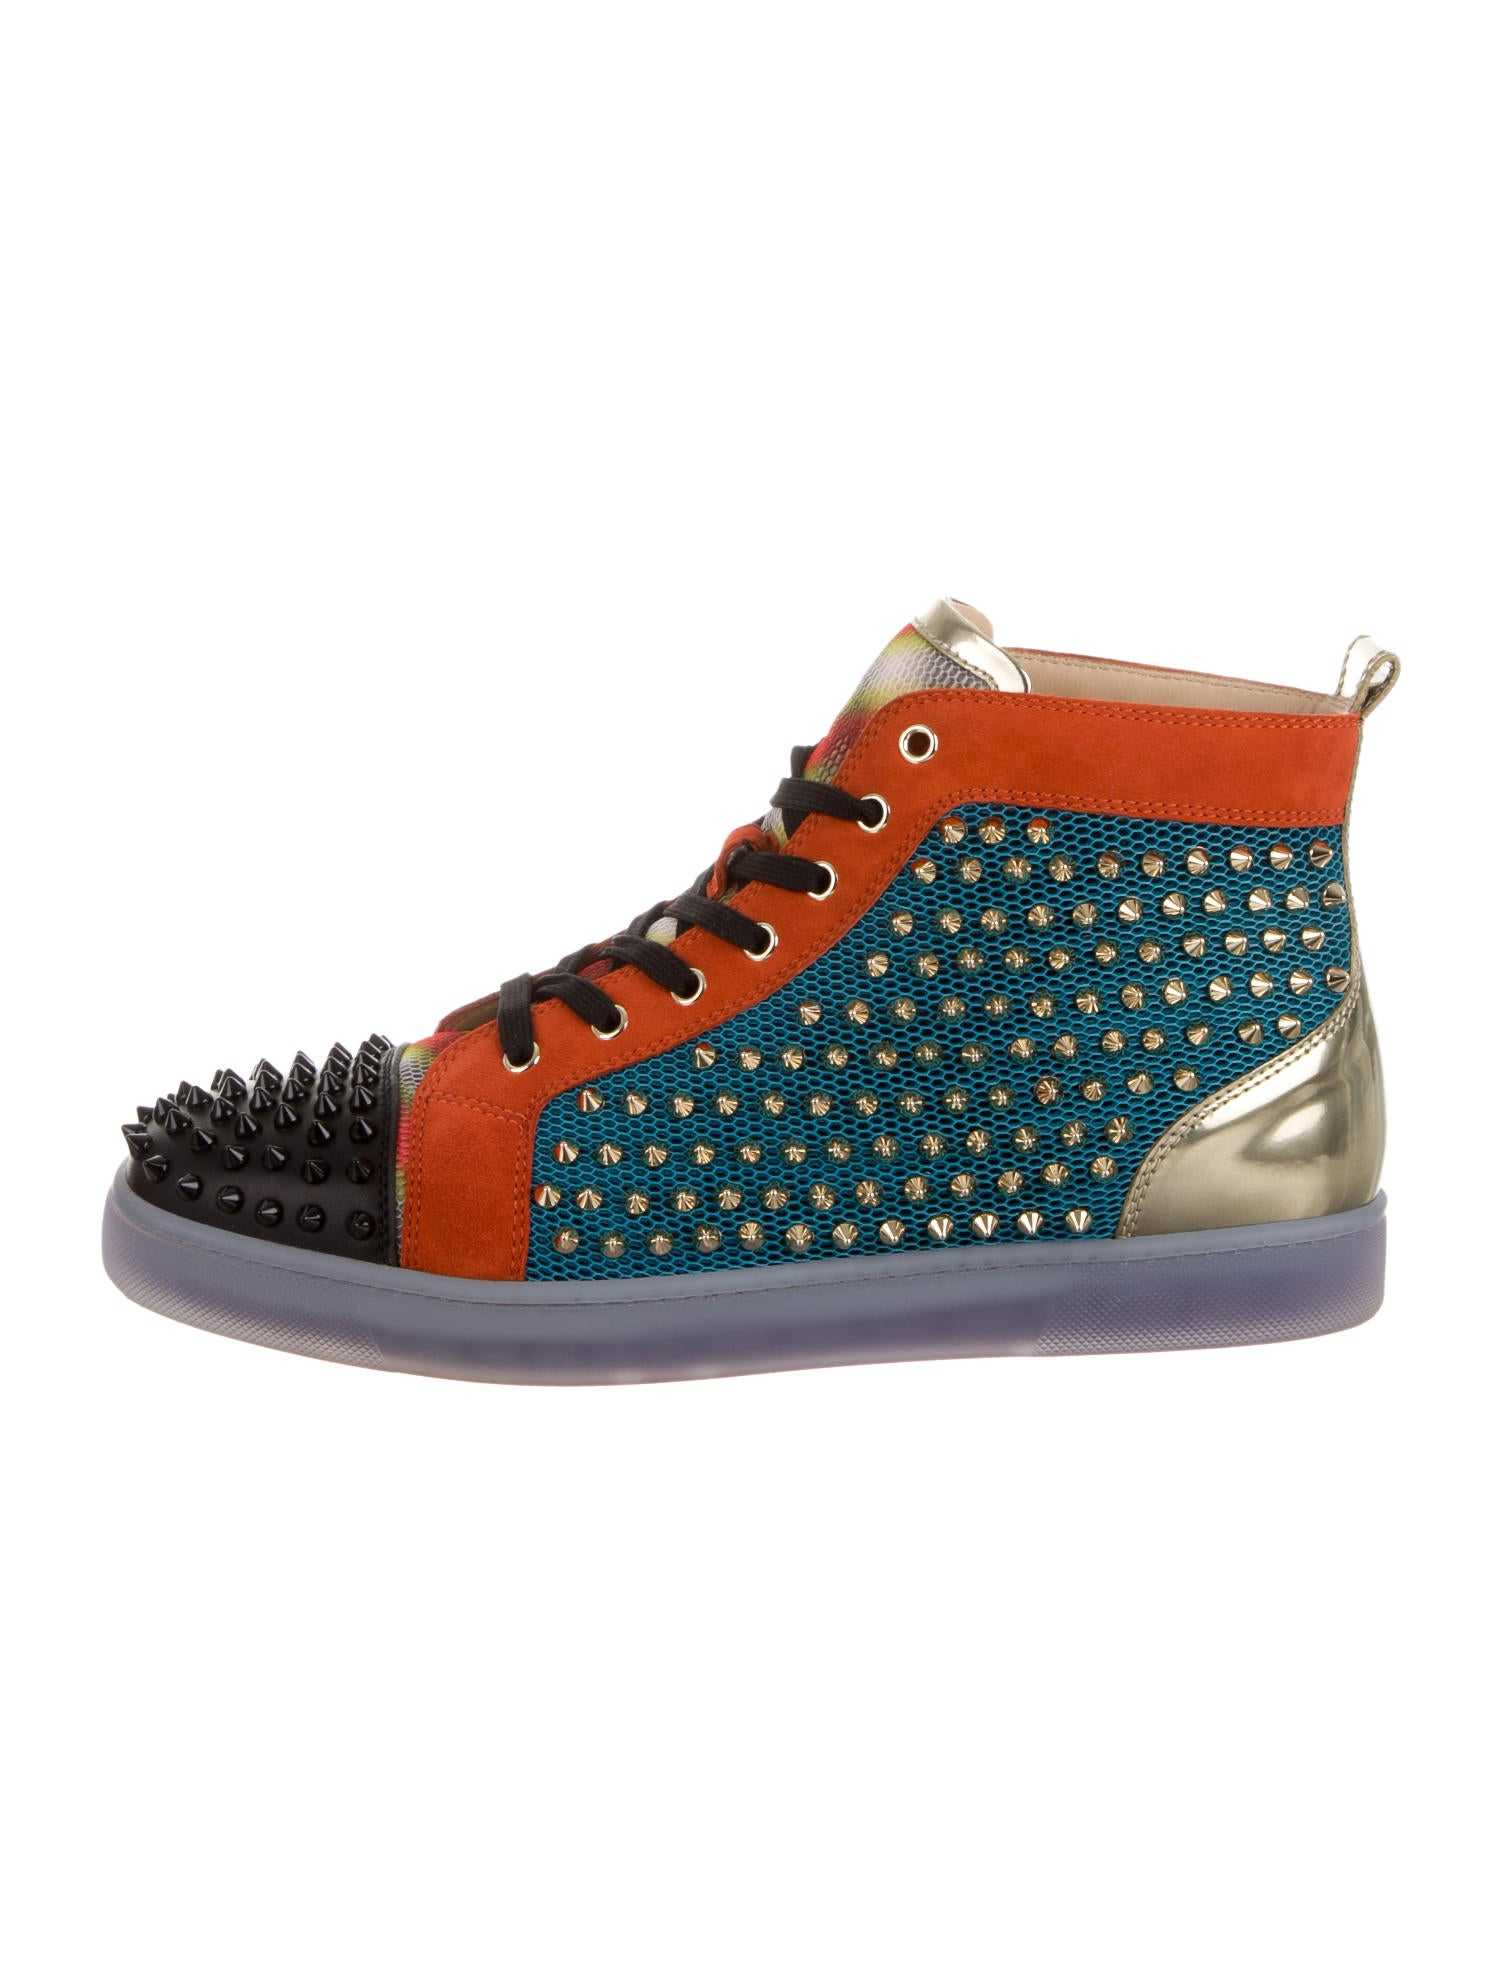 new concept e92c9 8cd51 Christian Louboutin Louis Flat Spike Sneakers - Shoes ...